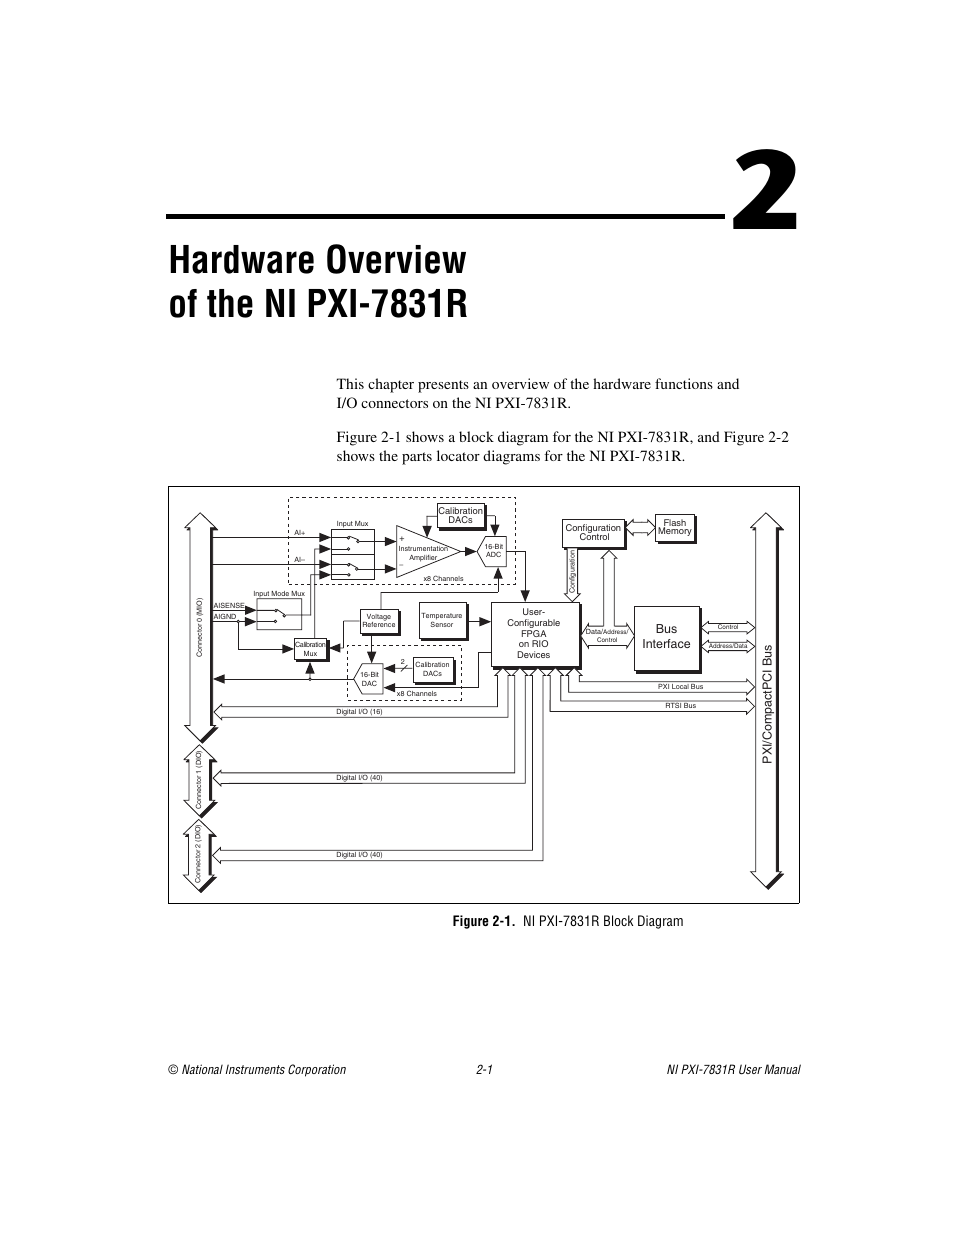 Chapter 2 hardware overview of the ni pxi 7831r figure 2 1 ni pxi chapter 2 hardware overview of the ni pxi 7831r figure 2 1 ccuart Choice Image